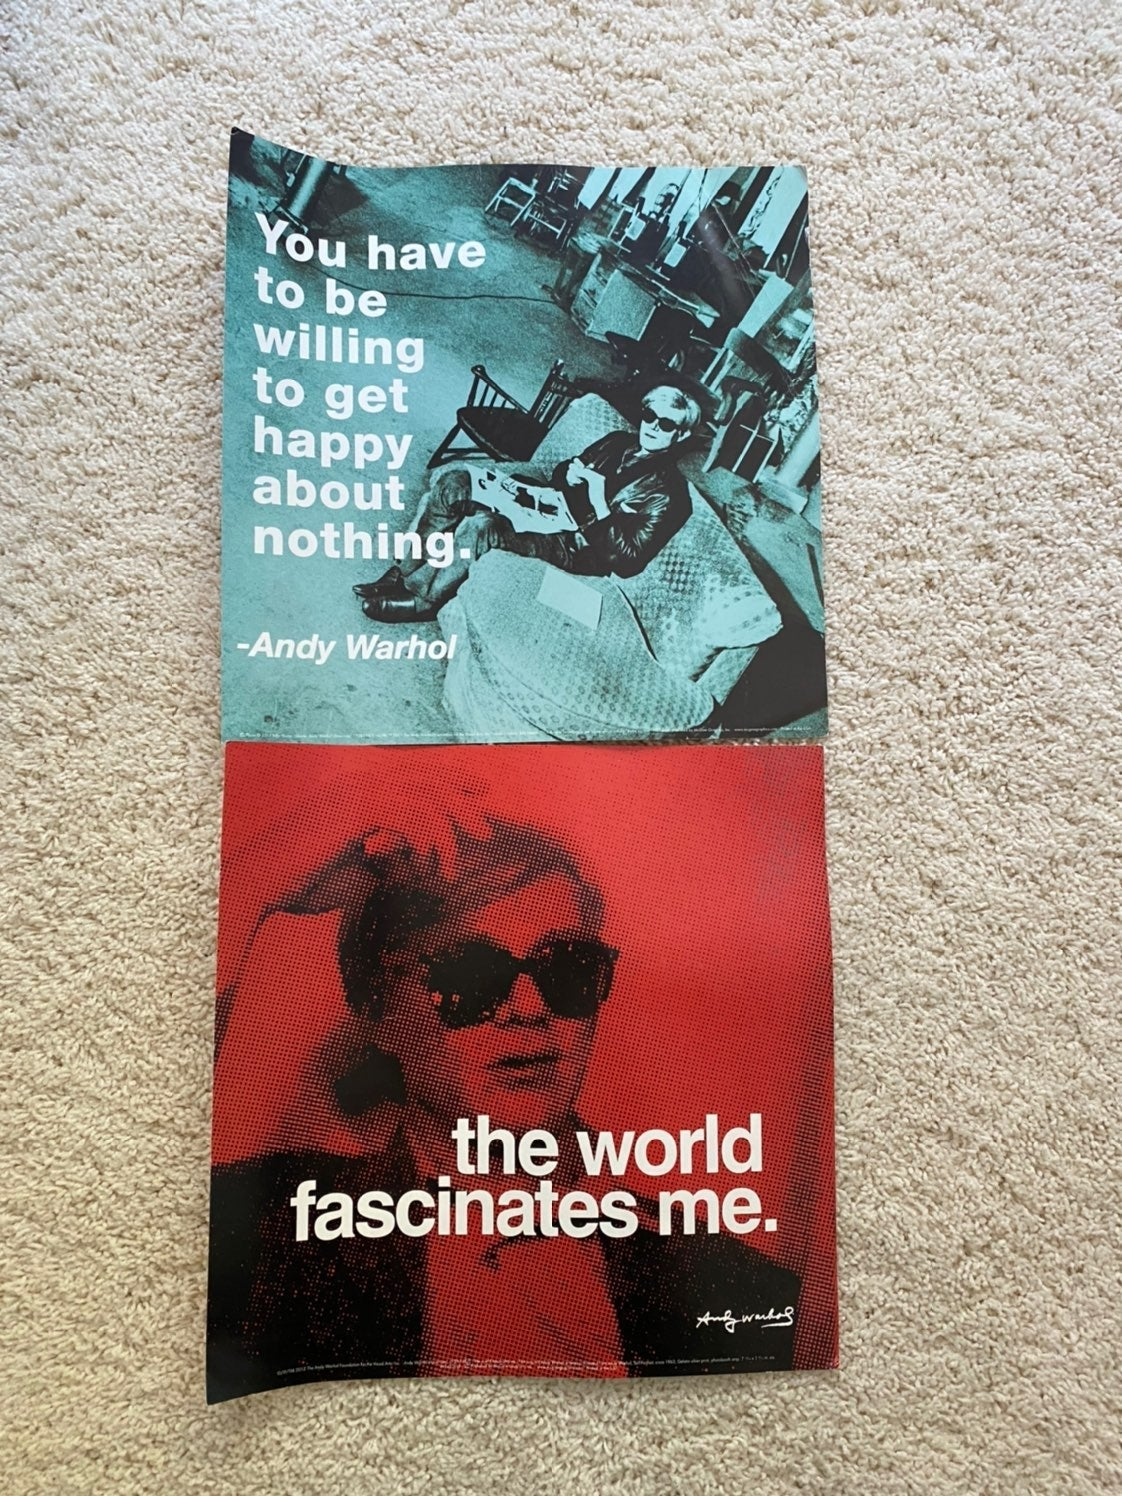 Andy Warhol Posters 12X12